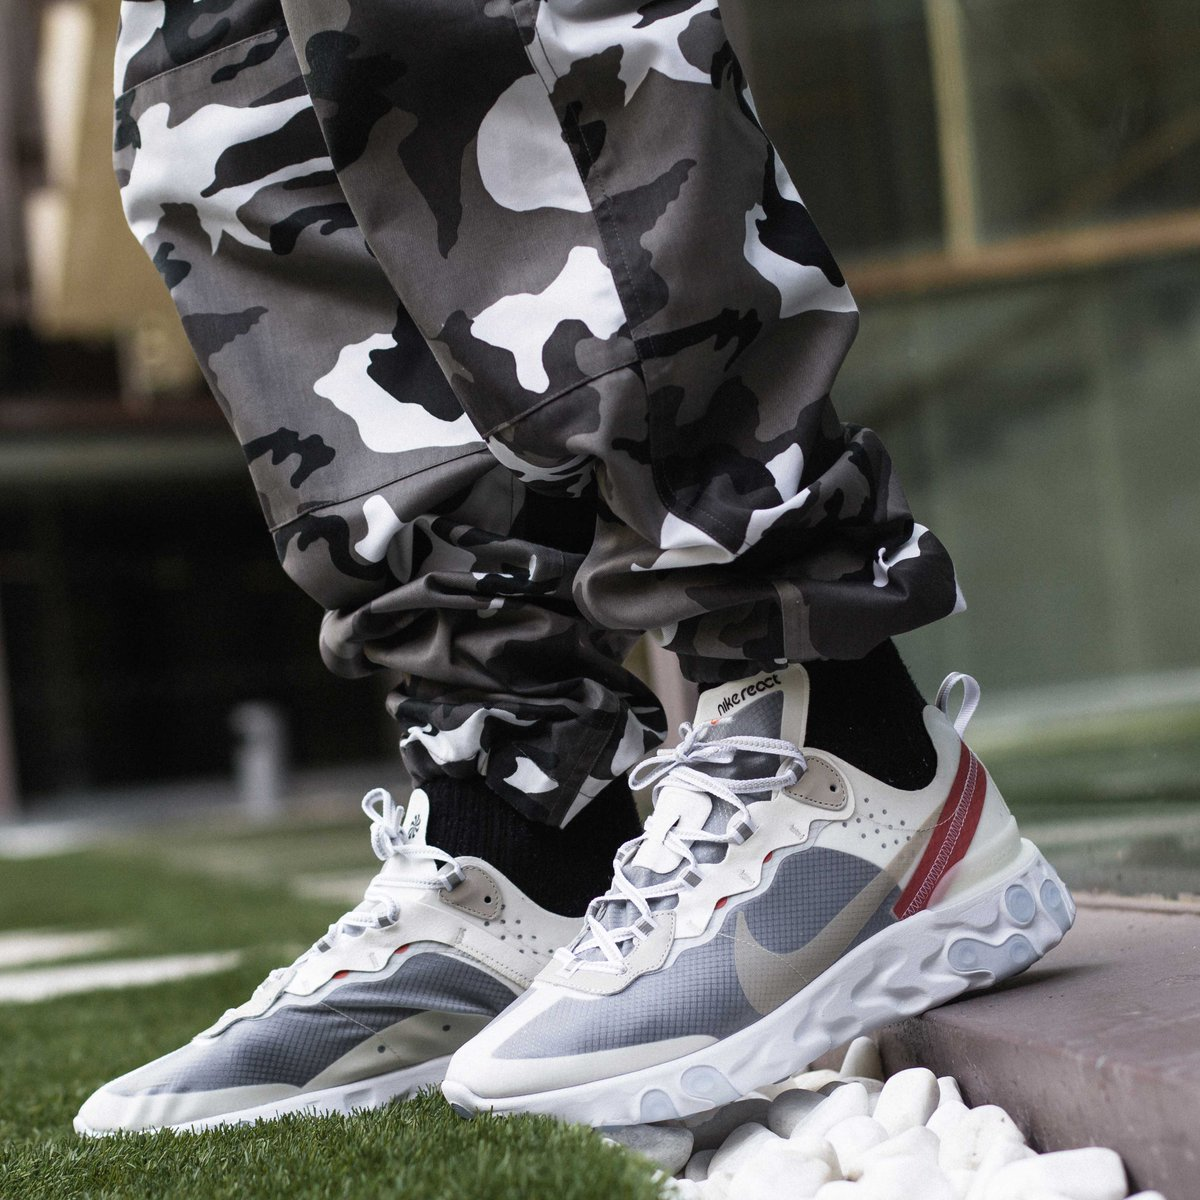 93807c11be61 What s your natural reaction  https   t.co rdTEBm6xSm ⠀⠀⠀⠀ Nike React  Element 87 drops Thursday at 9am CET online   11am CET in store.  nike   nikereact ...